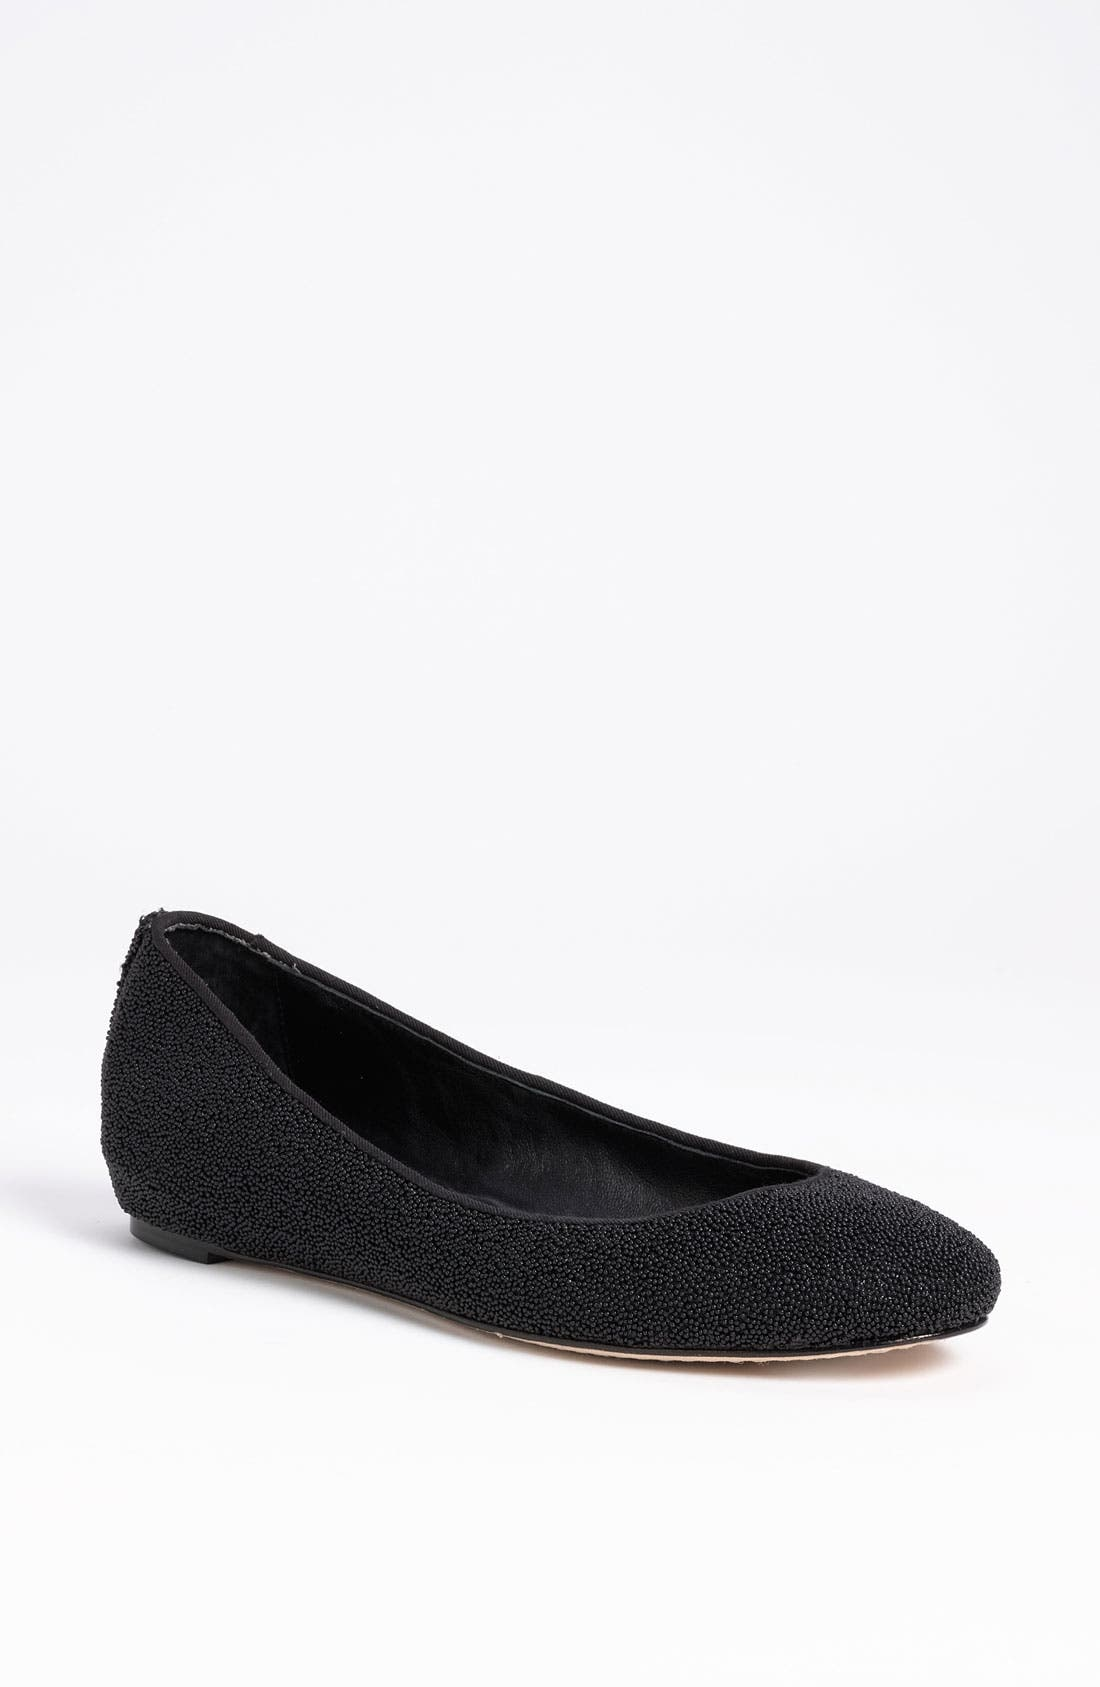 Alternate Image 1 Selected - Alice + Olivia 'Dawn' Flat